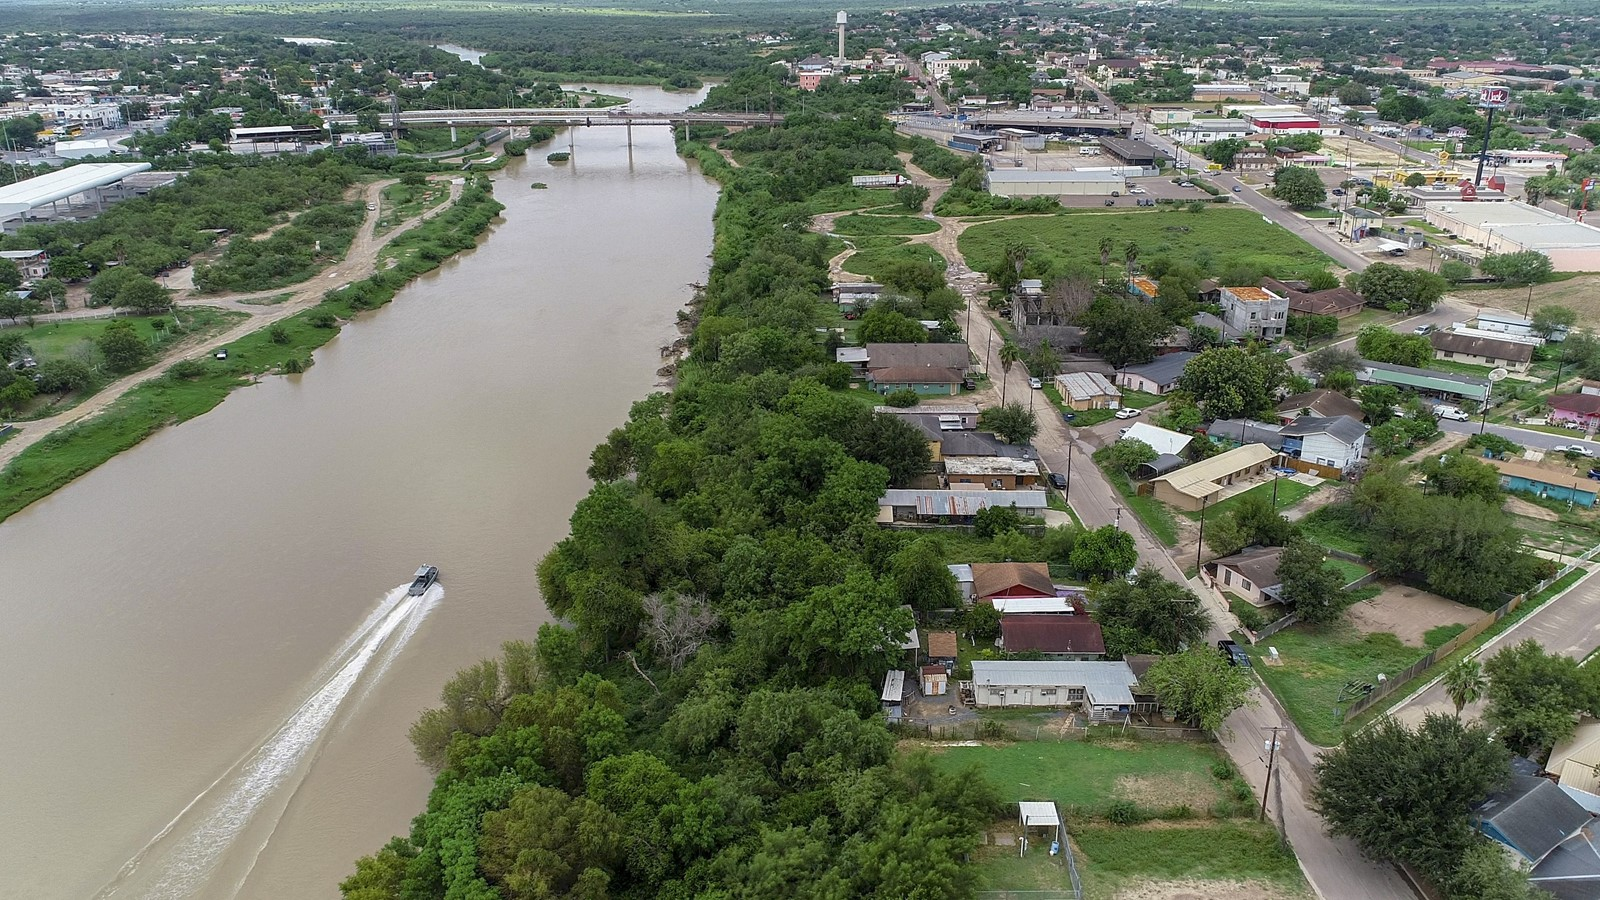 A Border Patrol boat travels the Rio Grande near the De La Cruz neighborhood of Roma, Texas. — Photograph: Robert Gauthier/Los Angeles Times.